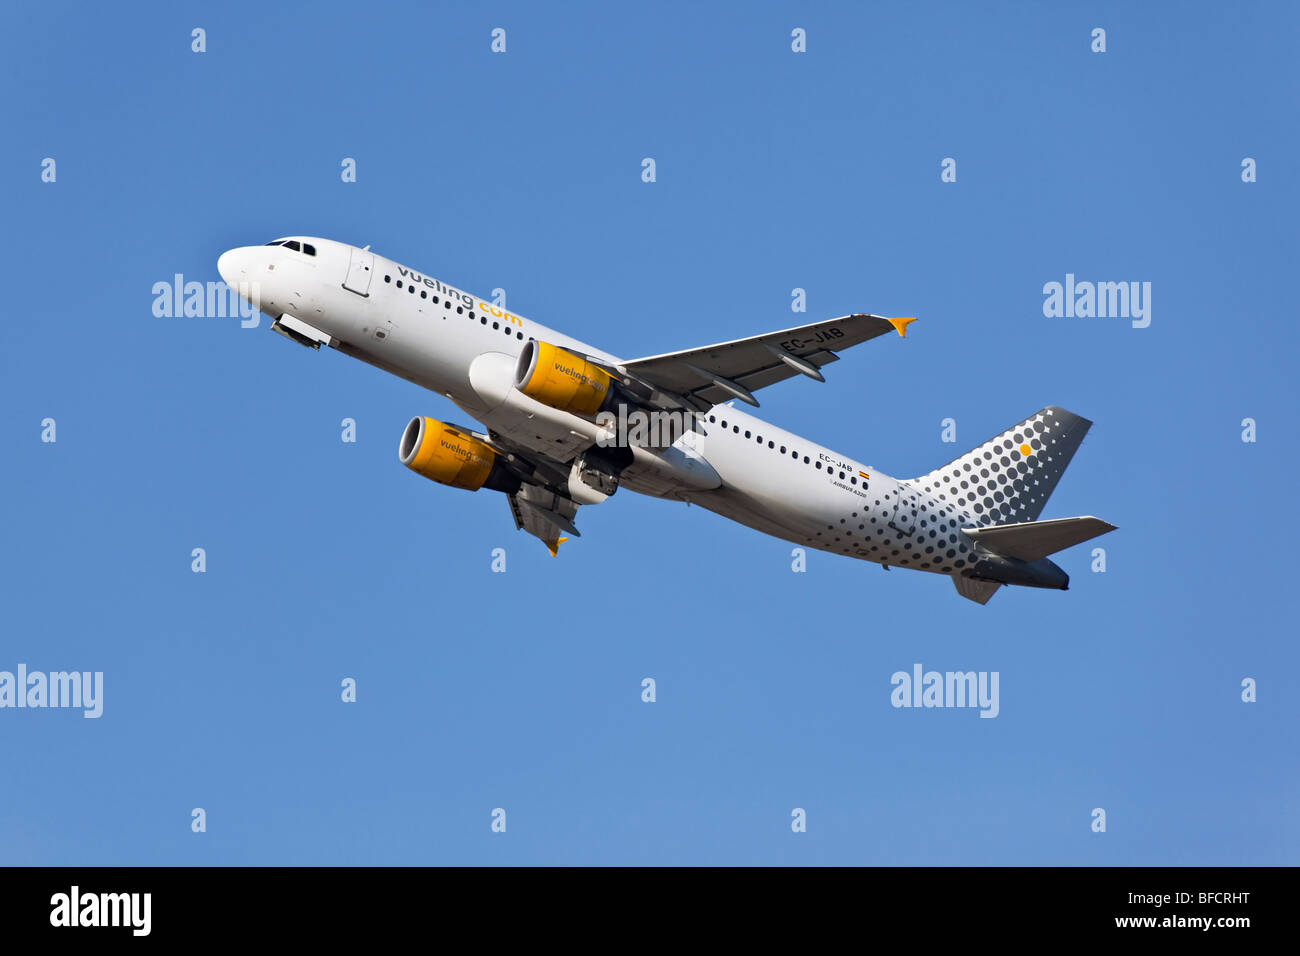 An Airbus A320 of the Spanish airline Vueling airlines on take off - Stock Image